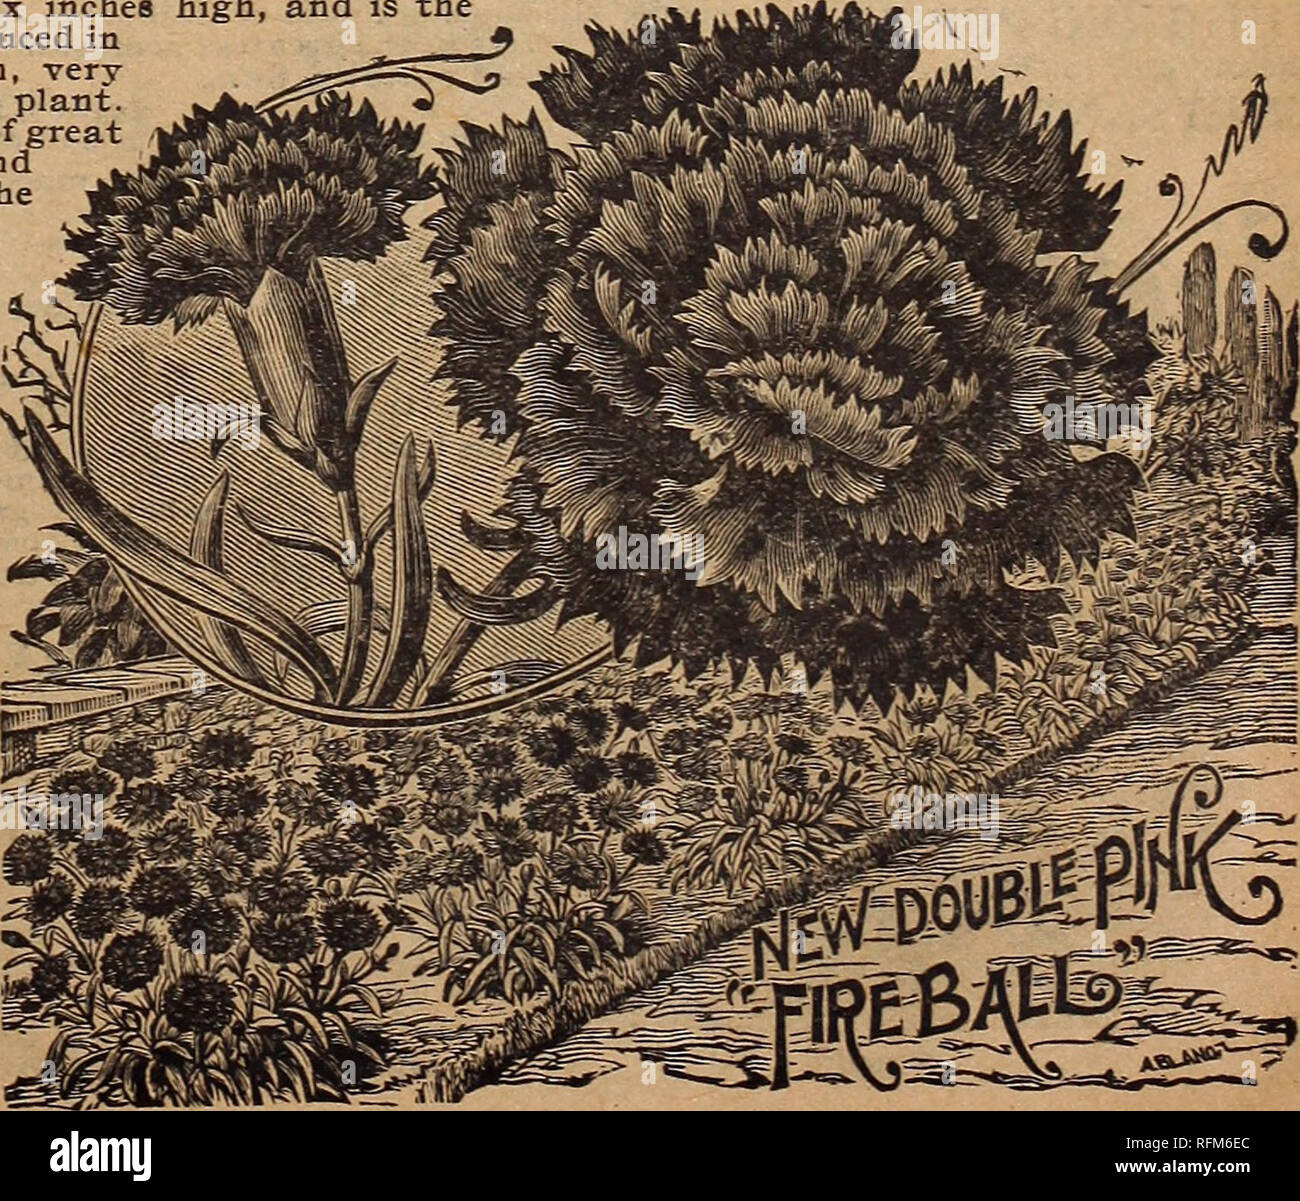 . Farm and floral guide. Nurseries (Horticulture) Minnesota Catalogs; Fruit Catalogs; Flower Seeds Catalogs; Plants, Ornamental Catalogs; Agricultural implements Catalogs. Eucharidium Breweri. Please note that these images are extracted from scanned page images that may have been digitally enhanced for readability - coloration and appearance of these illustrations may not perfectly resemble the original work.. L. L. May & Co; Henry G. Gilbert Nursery and Seed Trade Catalog Collection. St. Paul, Minn. : L. L. May & Co. Stock Photo